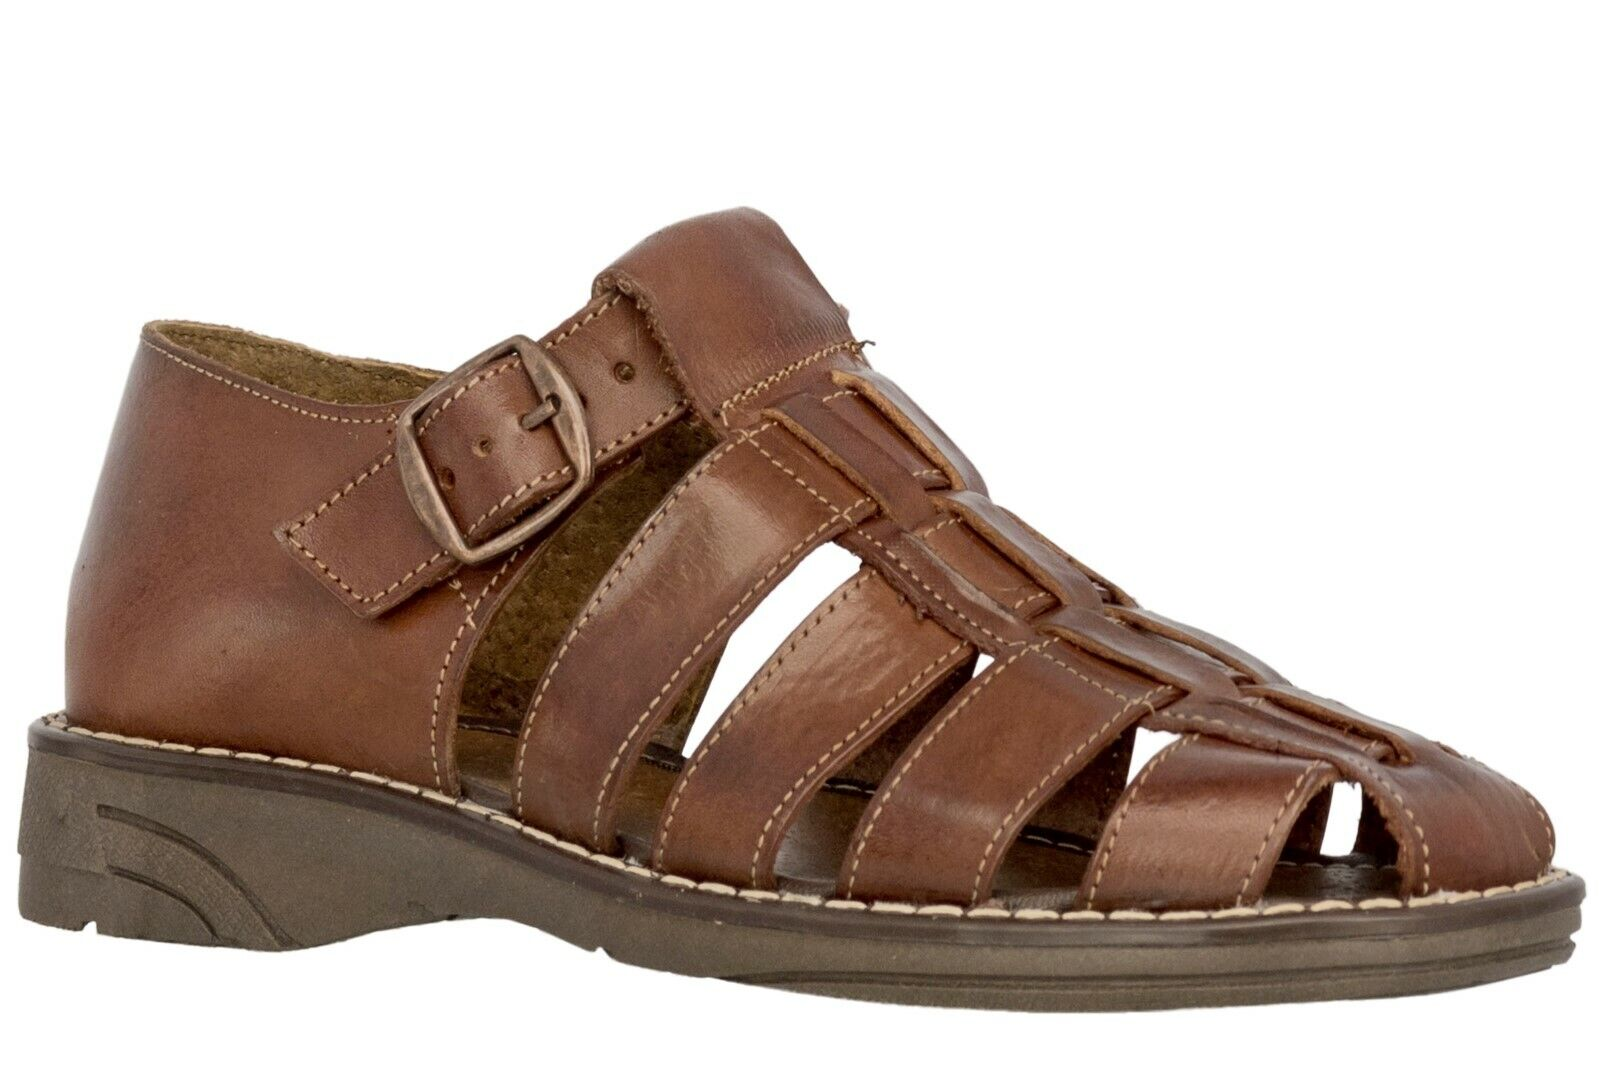 Mens Genuine Cognac Brown Leather Mexican Huaraches Buckle Sandals Flip Flops 1